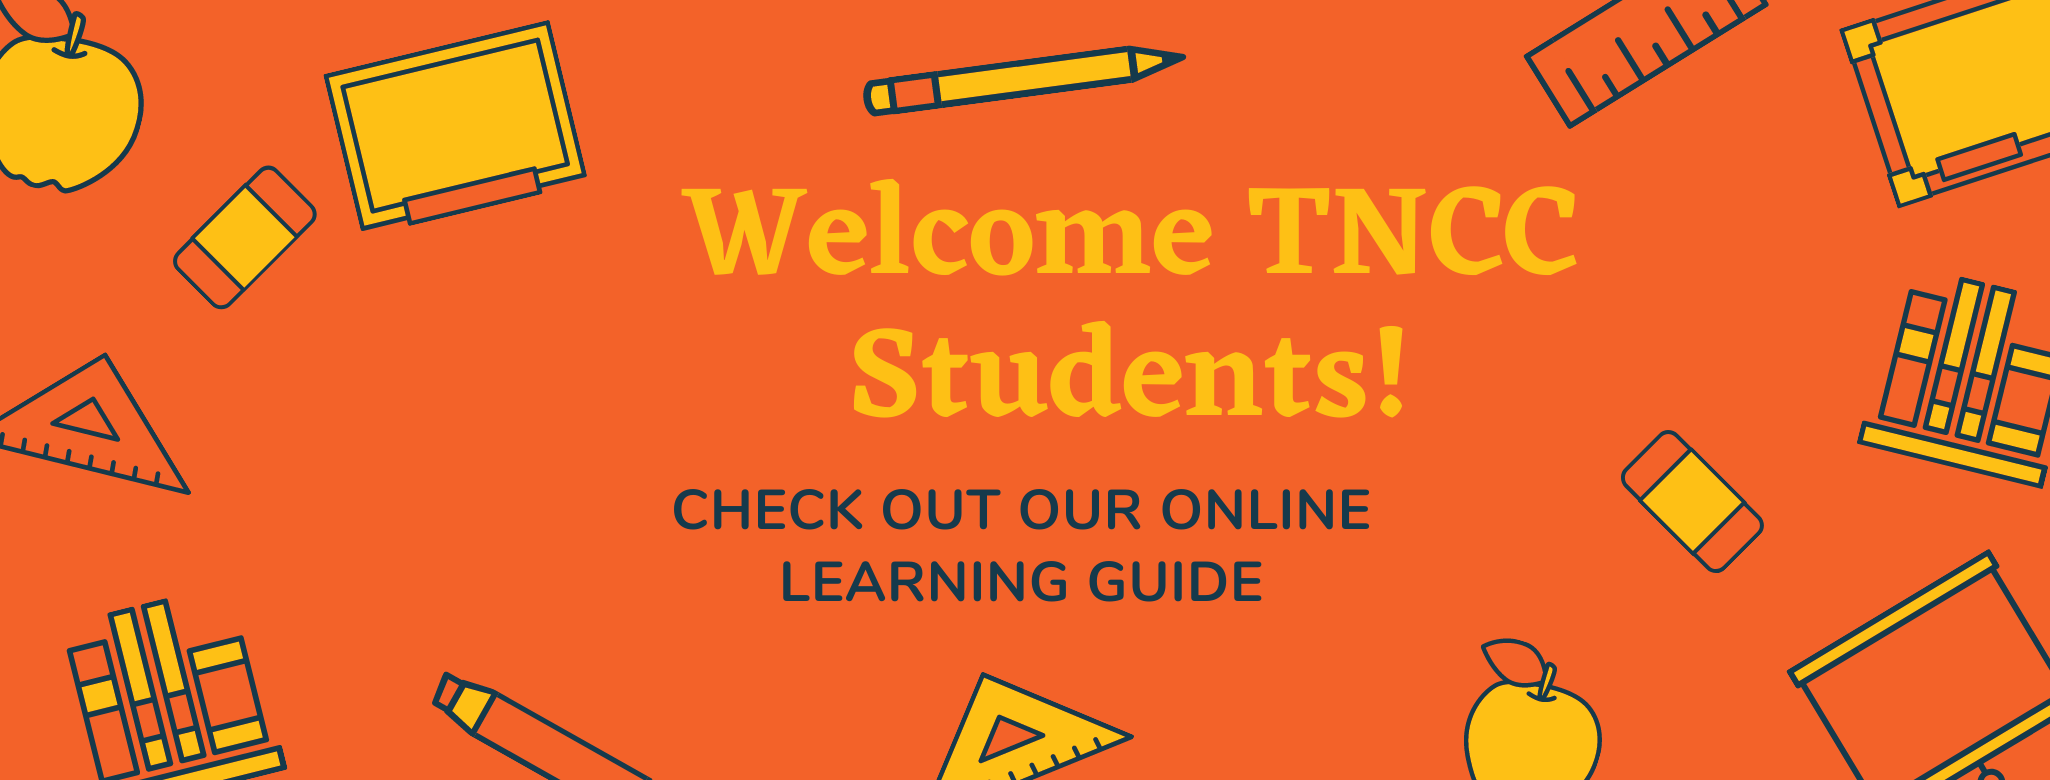 Welcome TNCC Students